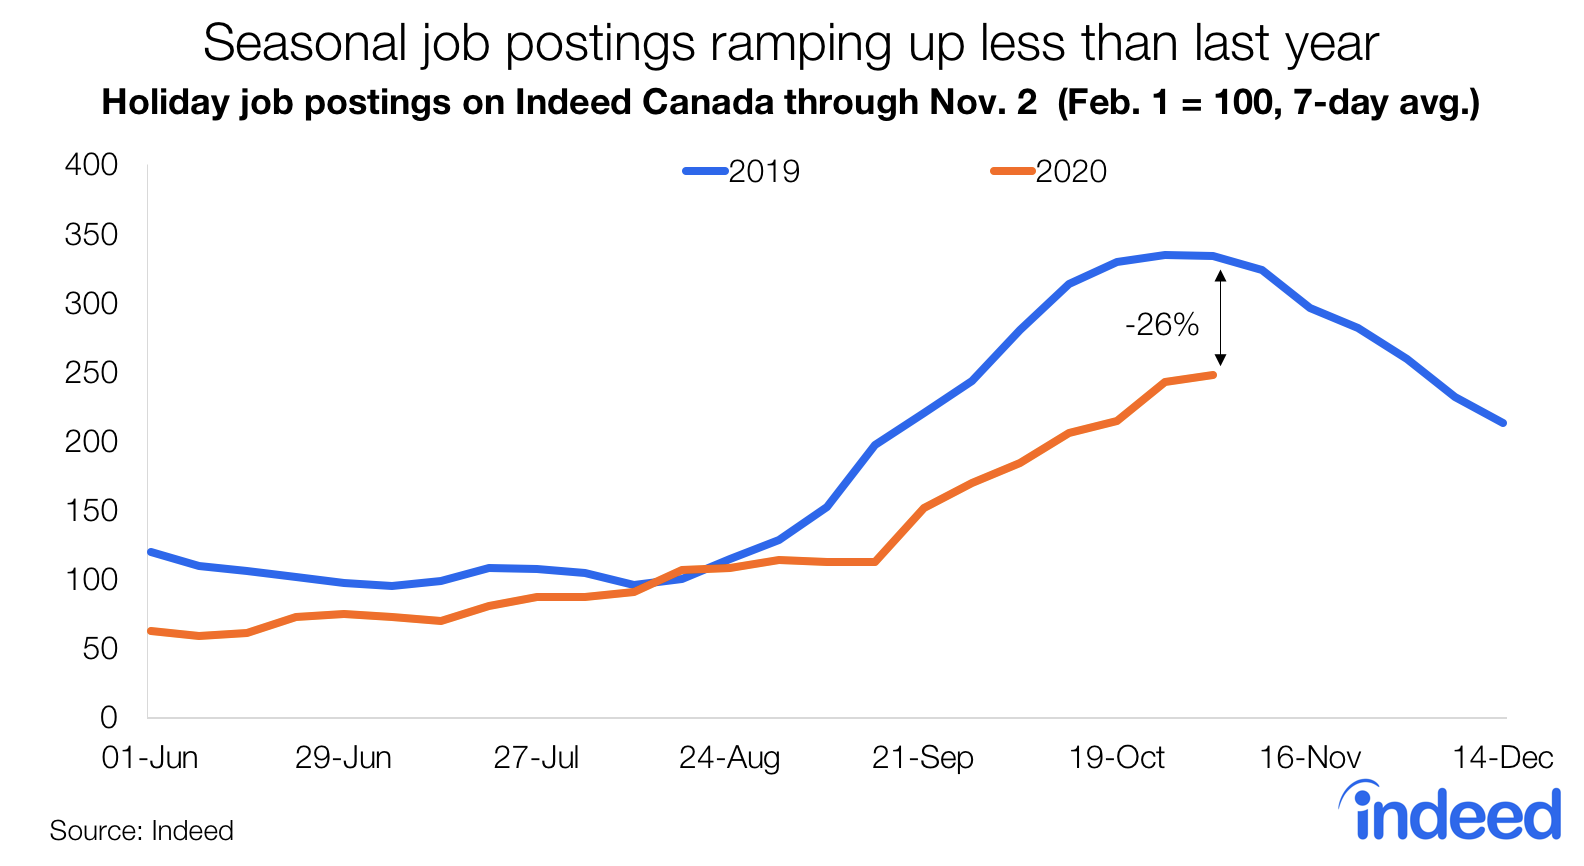 Line graph seasonal job postings ramping up less than 2019.